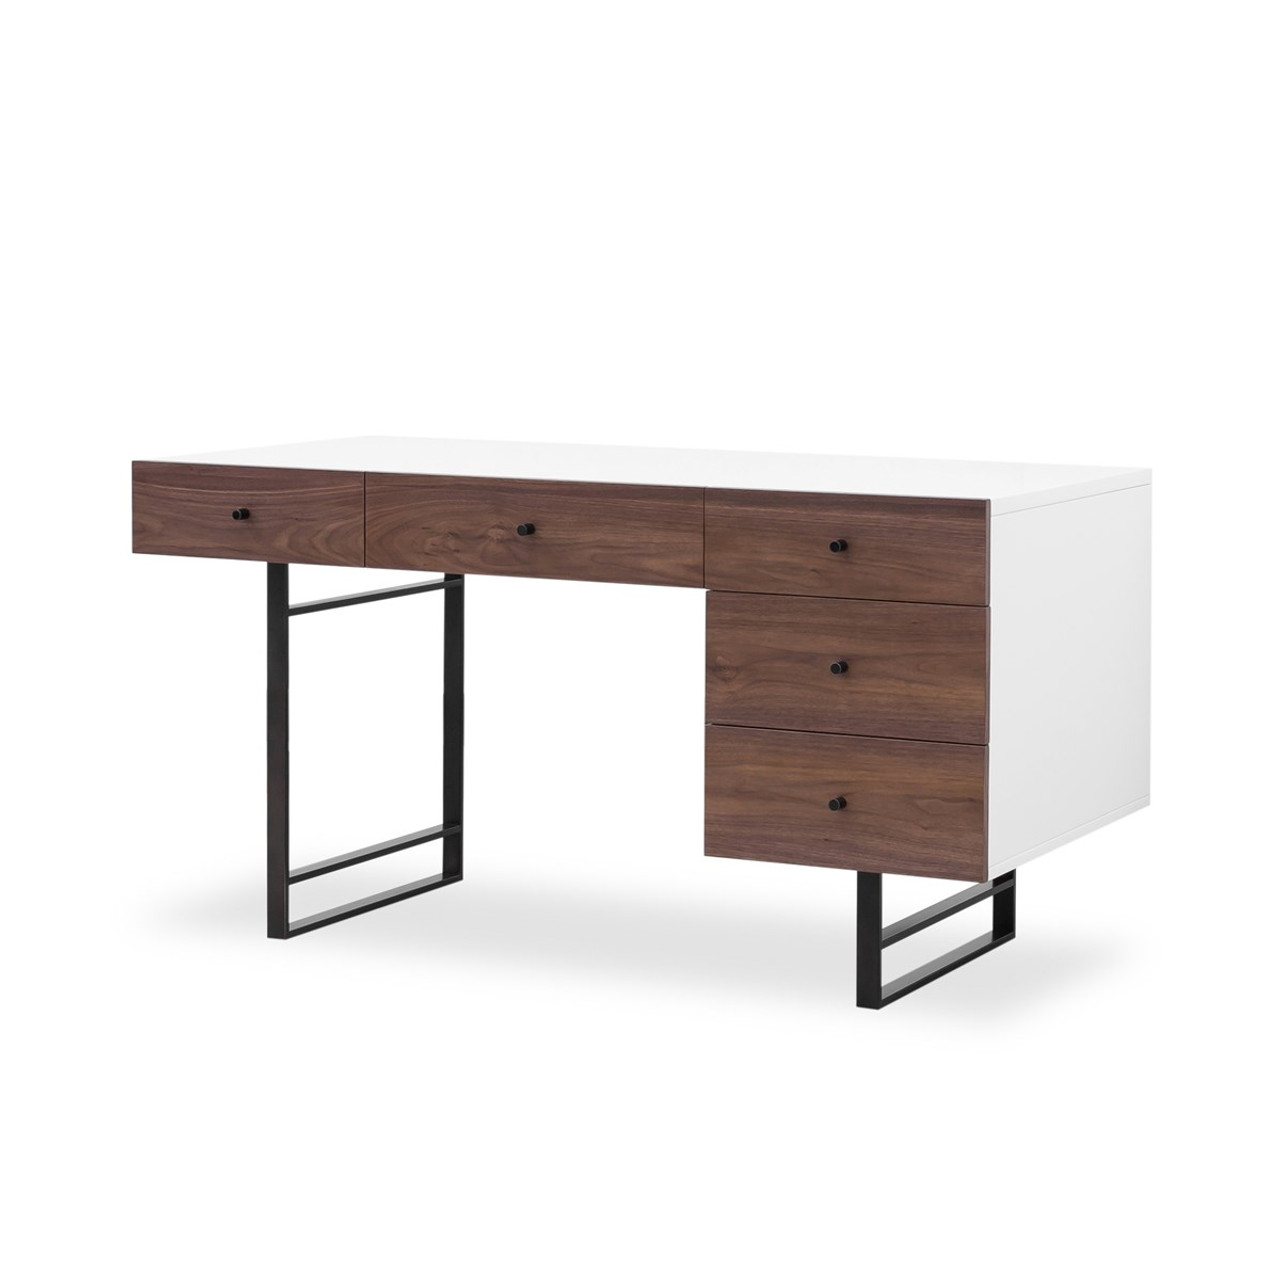 Image of: Mid Century Modern White Lacquer Tucker Desk Walnut Zin Home